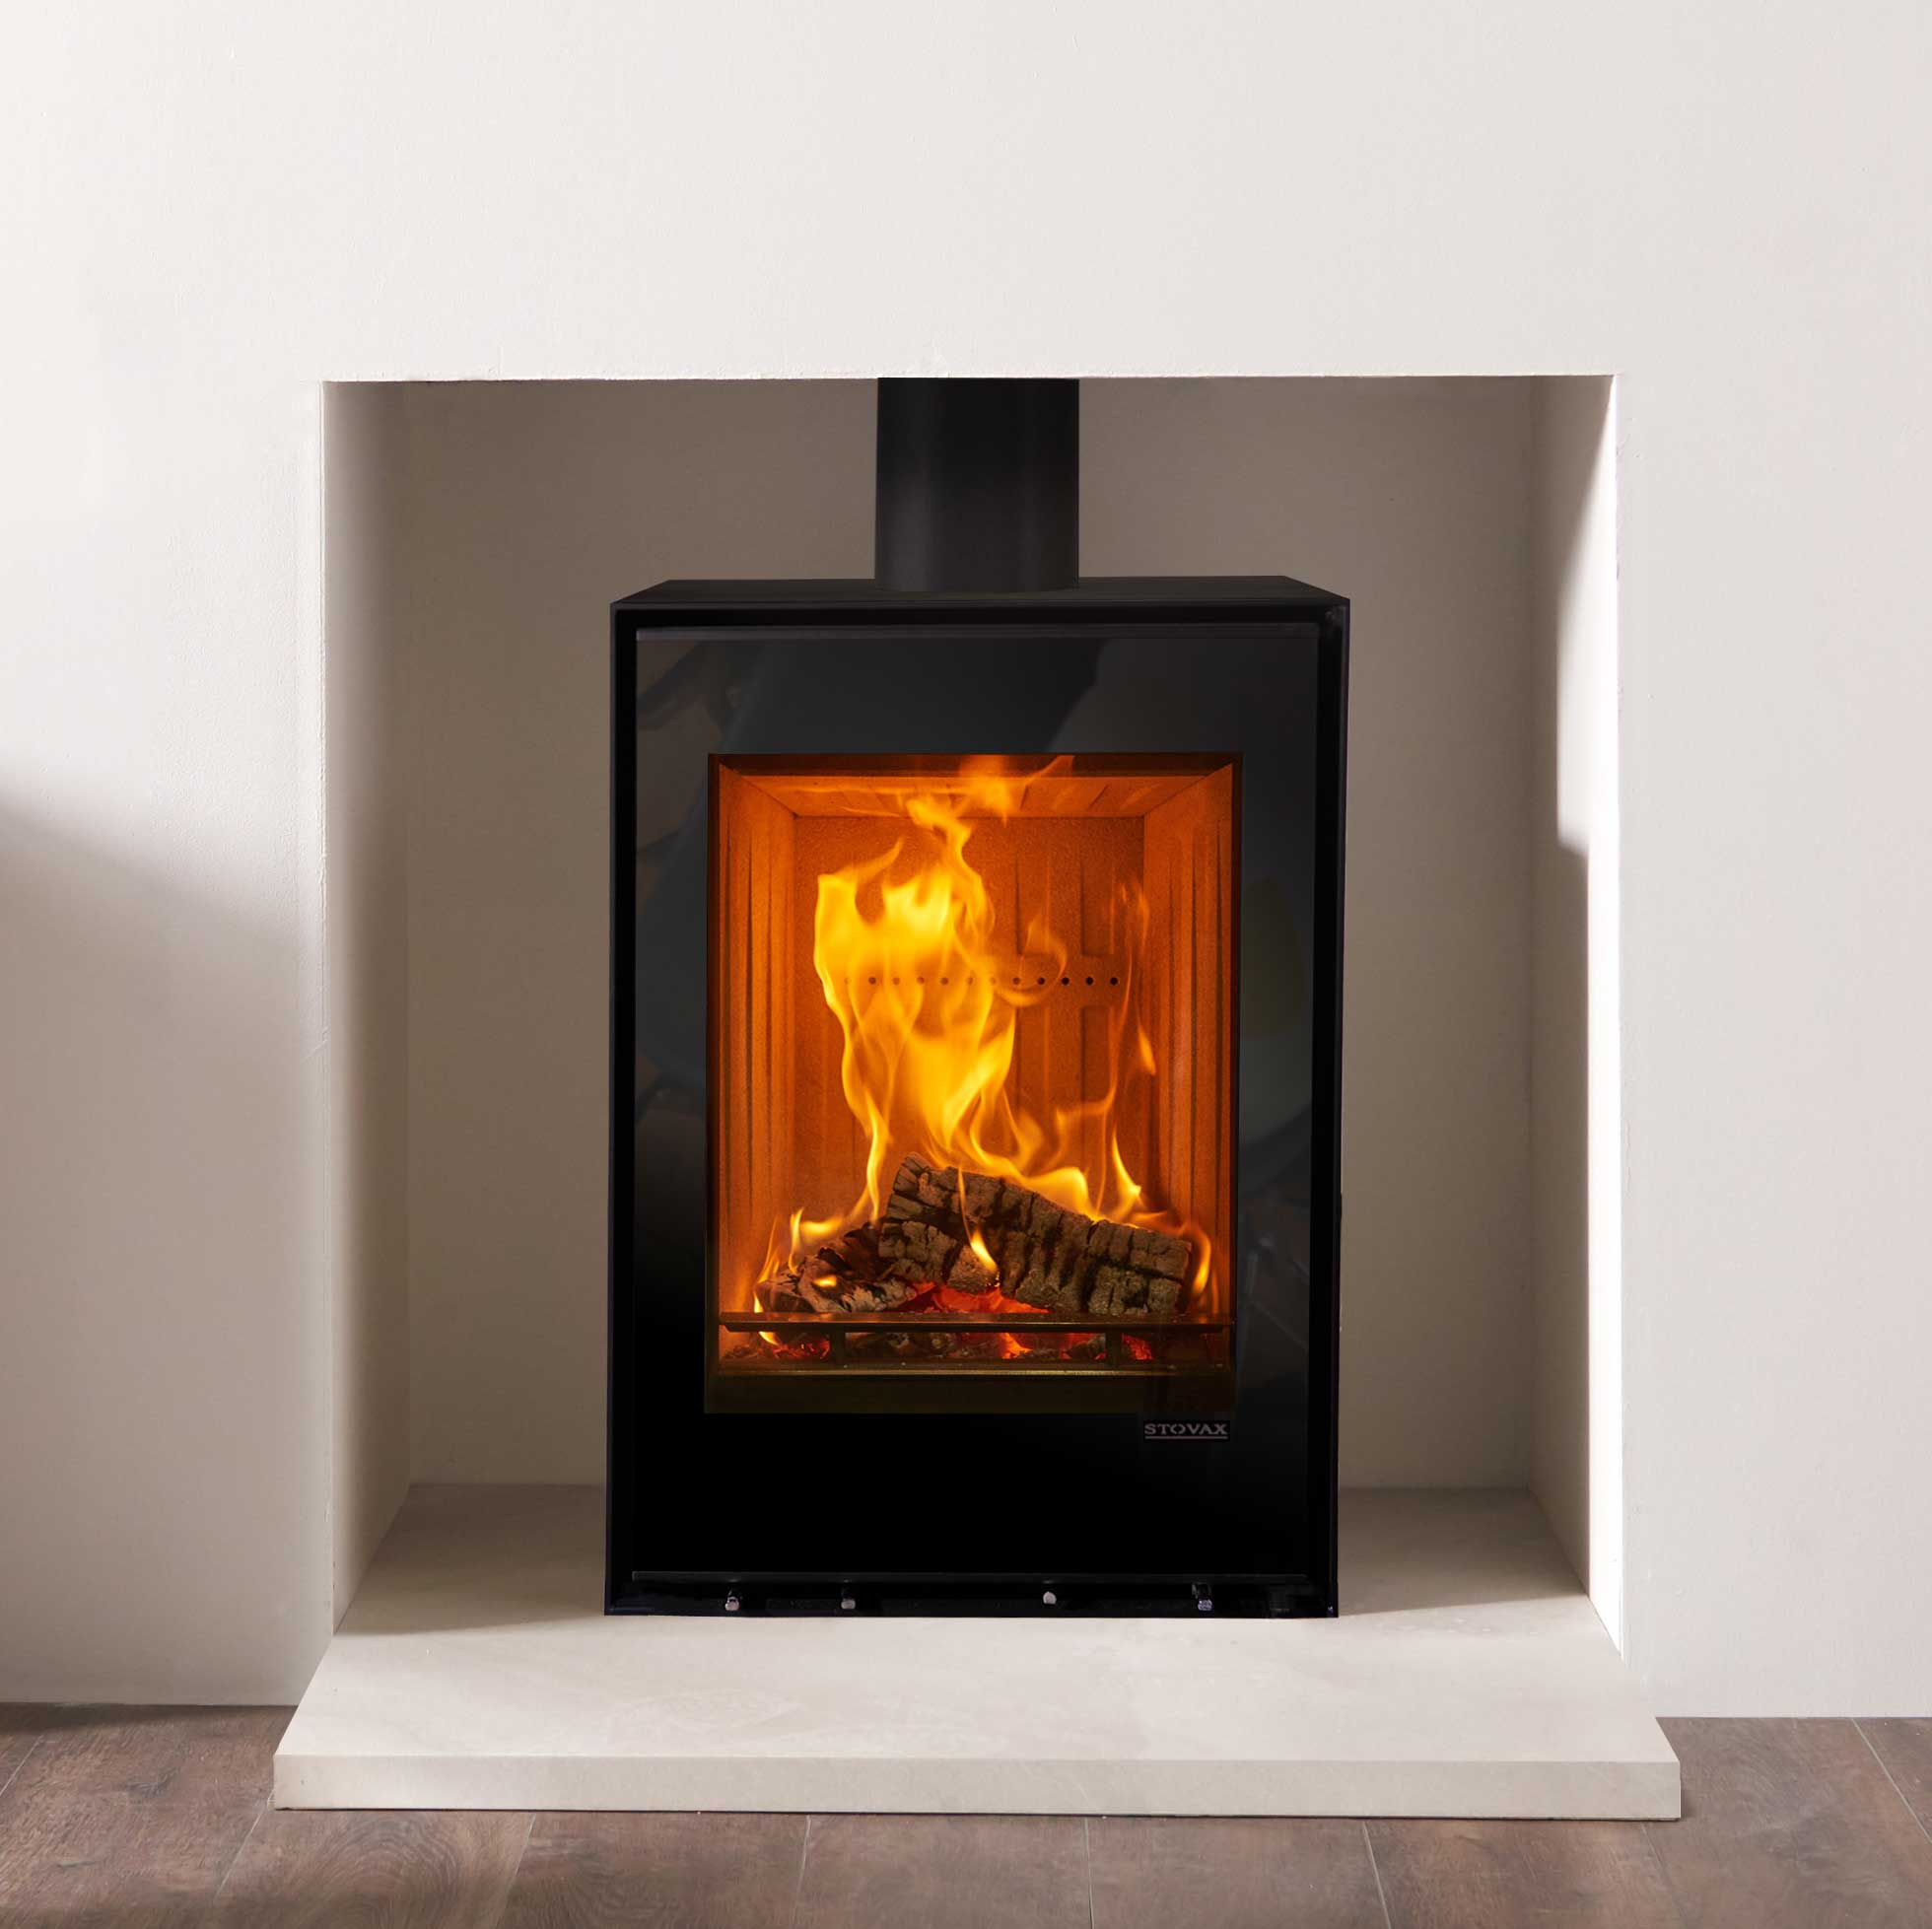 Stovax Elise 540t Glass Multi Fuel Stove The Stove Site